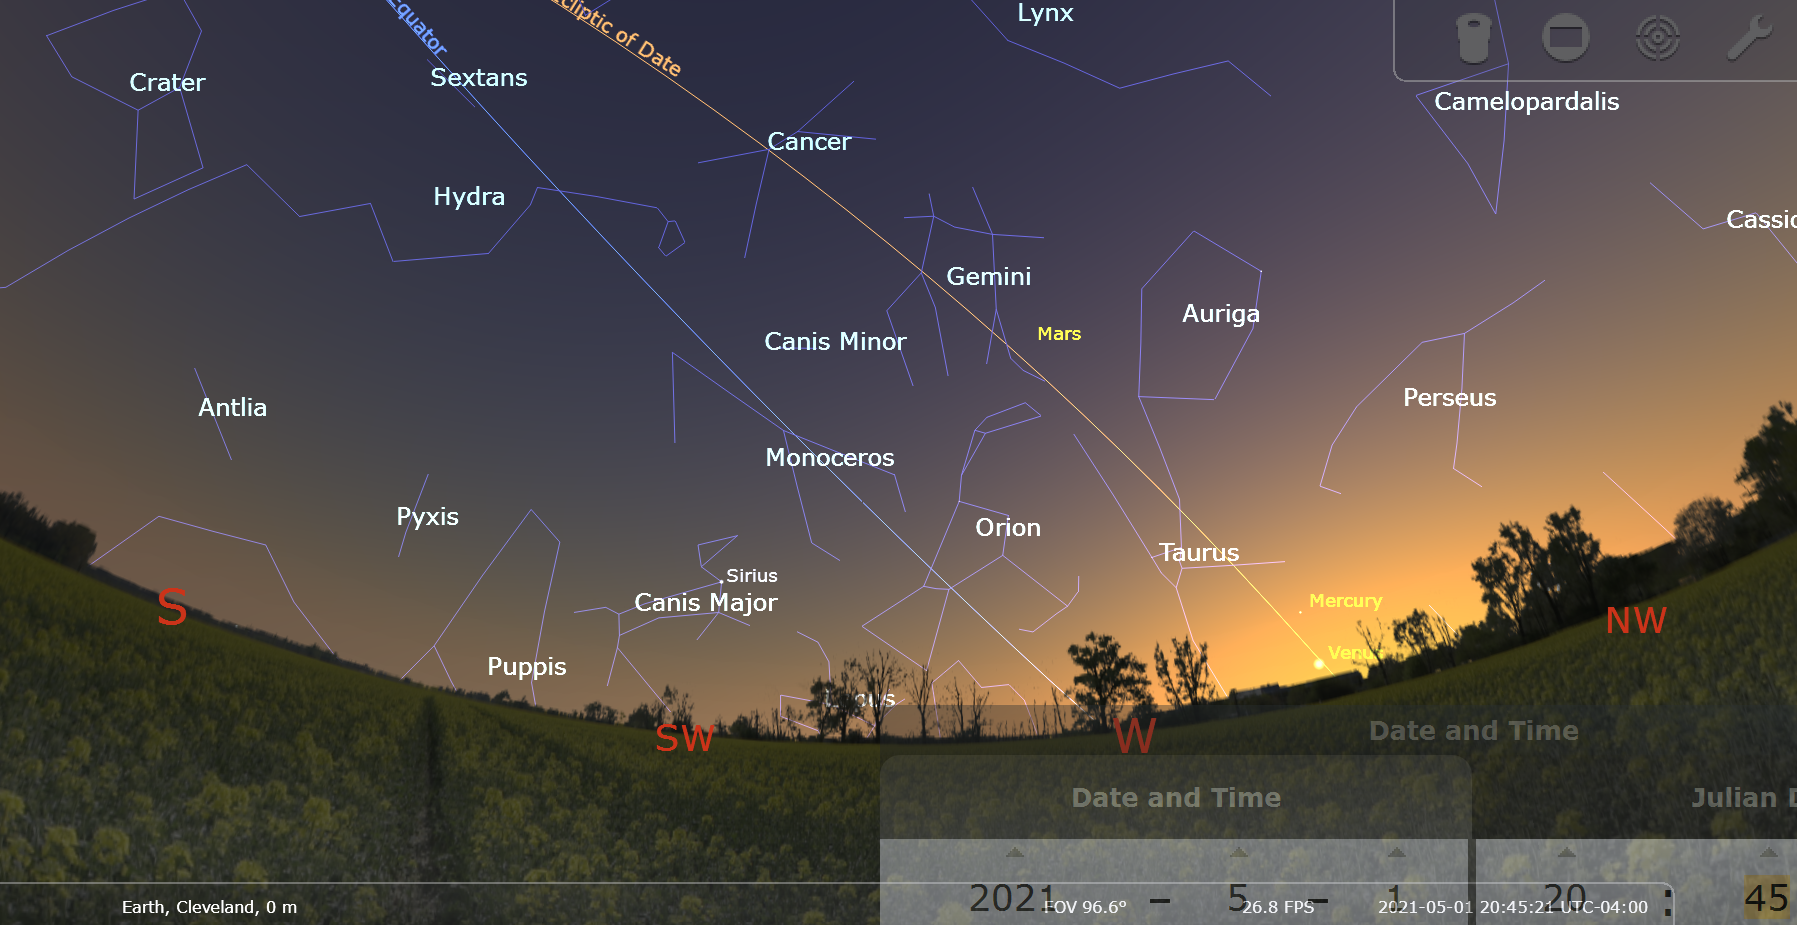 May 1, 2021 Venus, Mercury, Mars at sunset